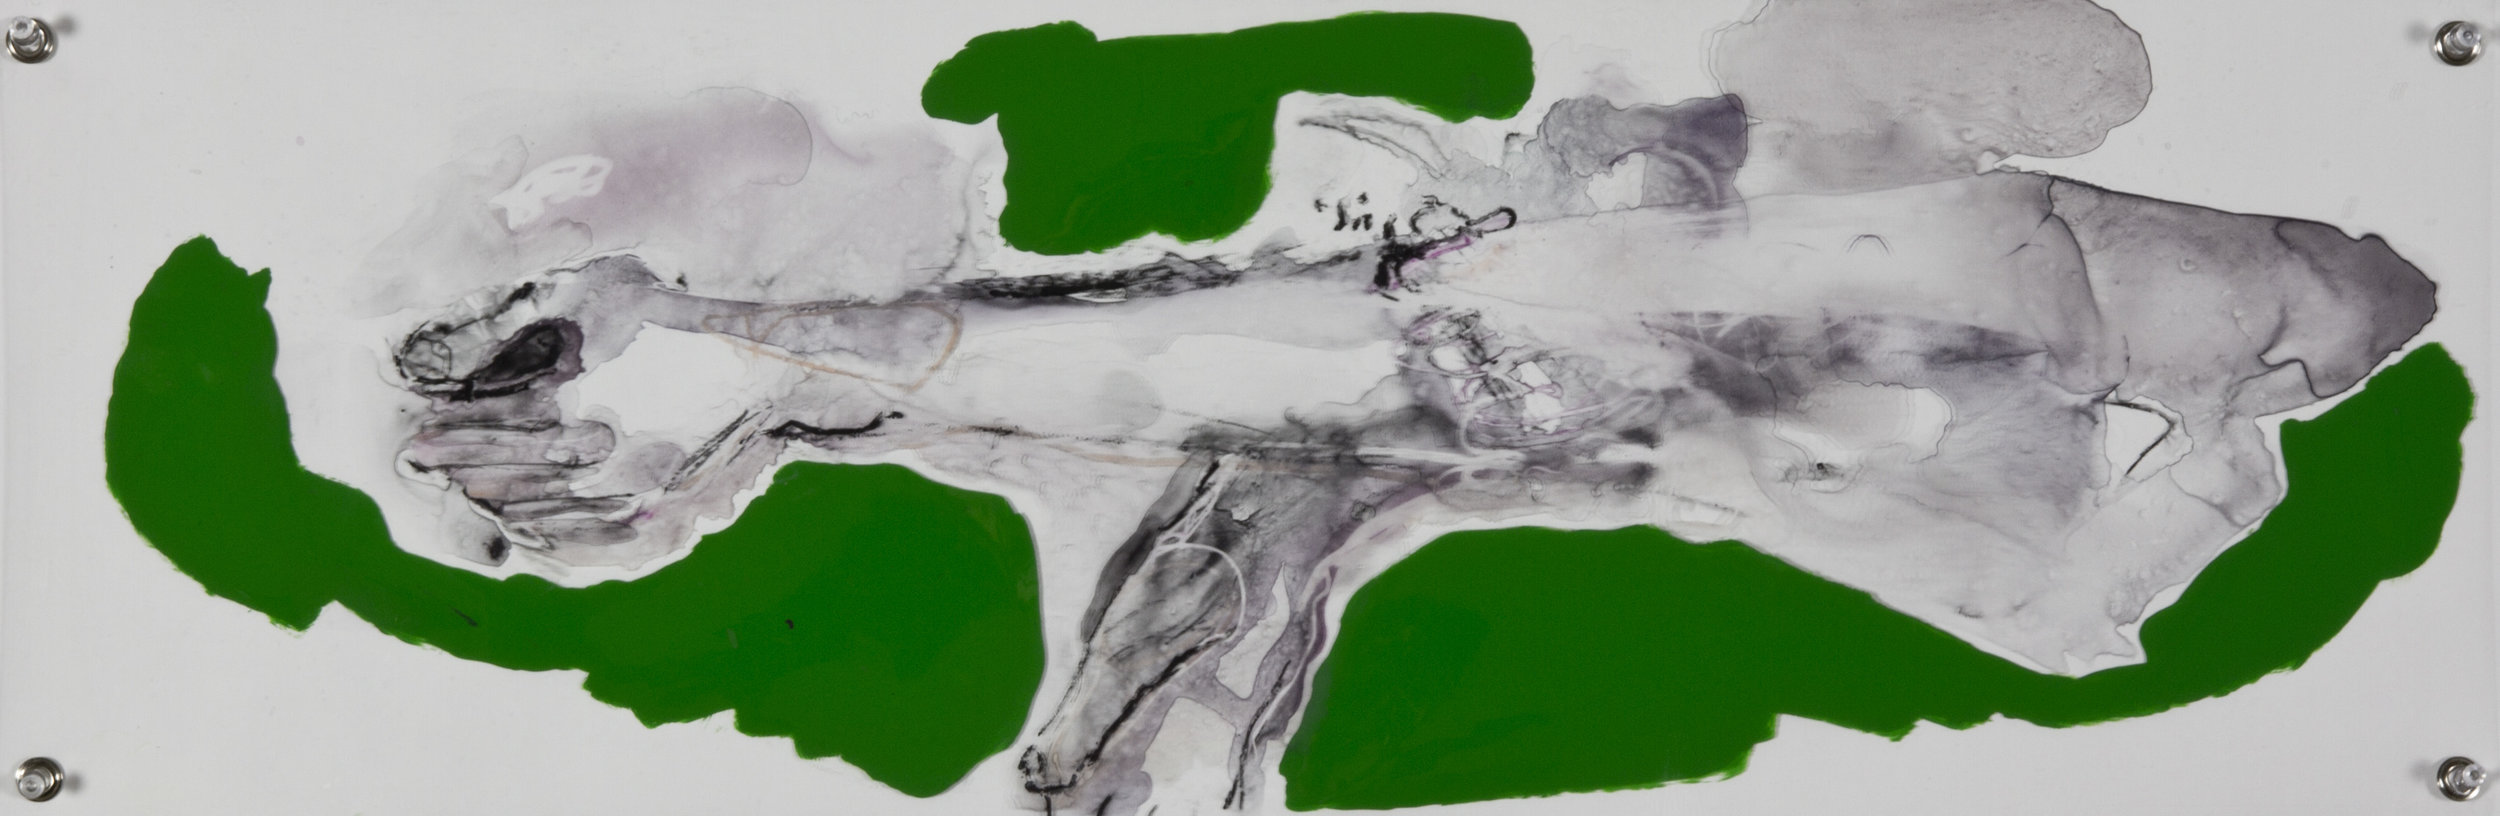 Across The Green, 2014, watercolor and acrylic on grommeted mylar, 10x30 inches